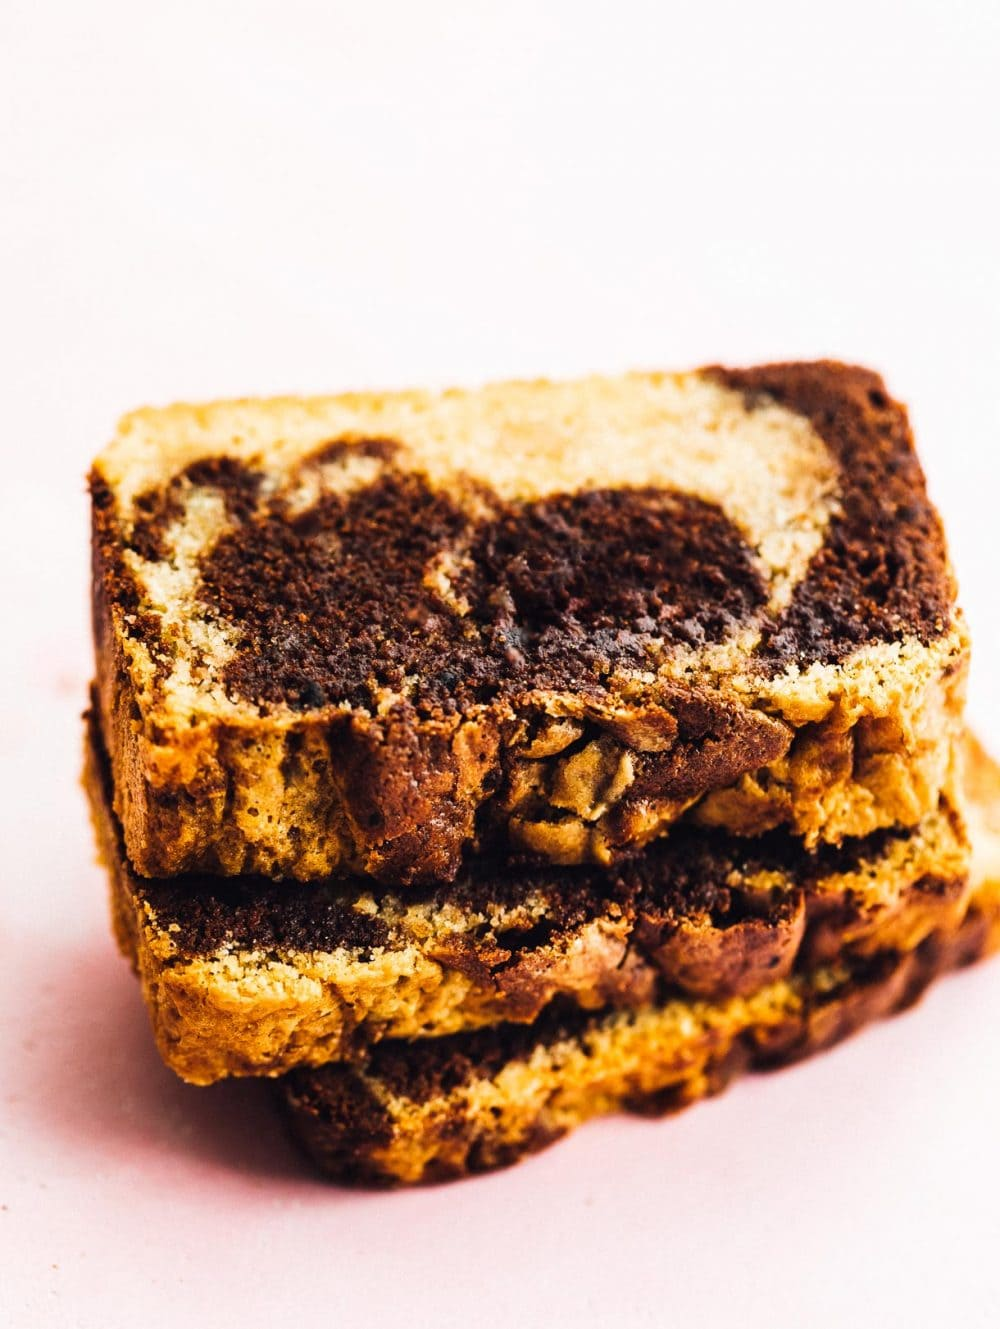 slices of marble pound cake stacked